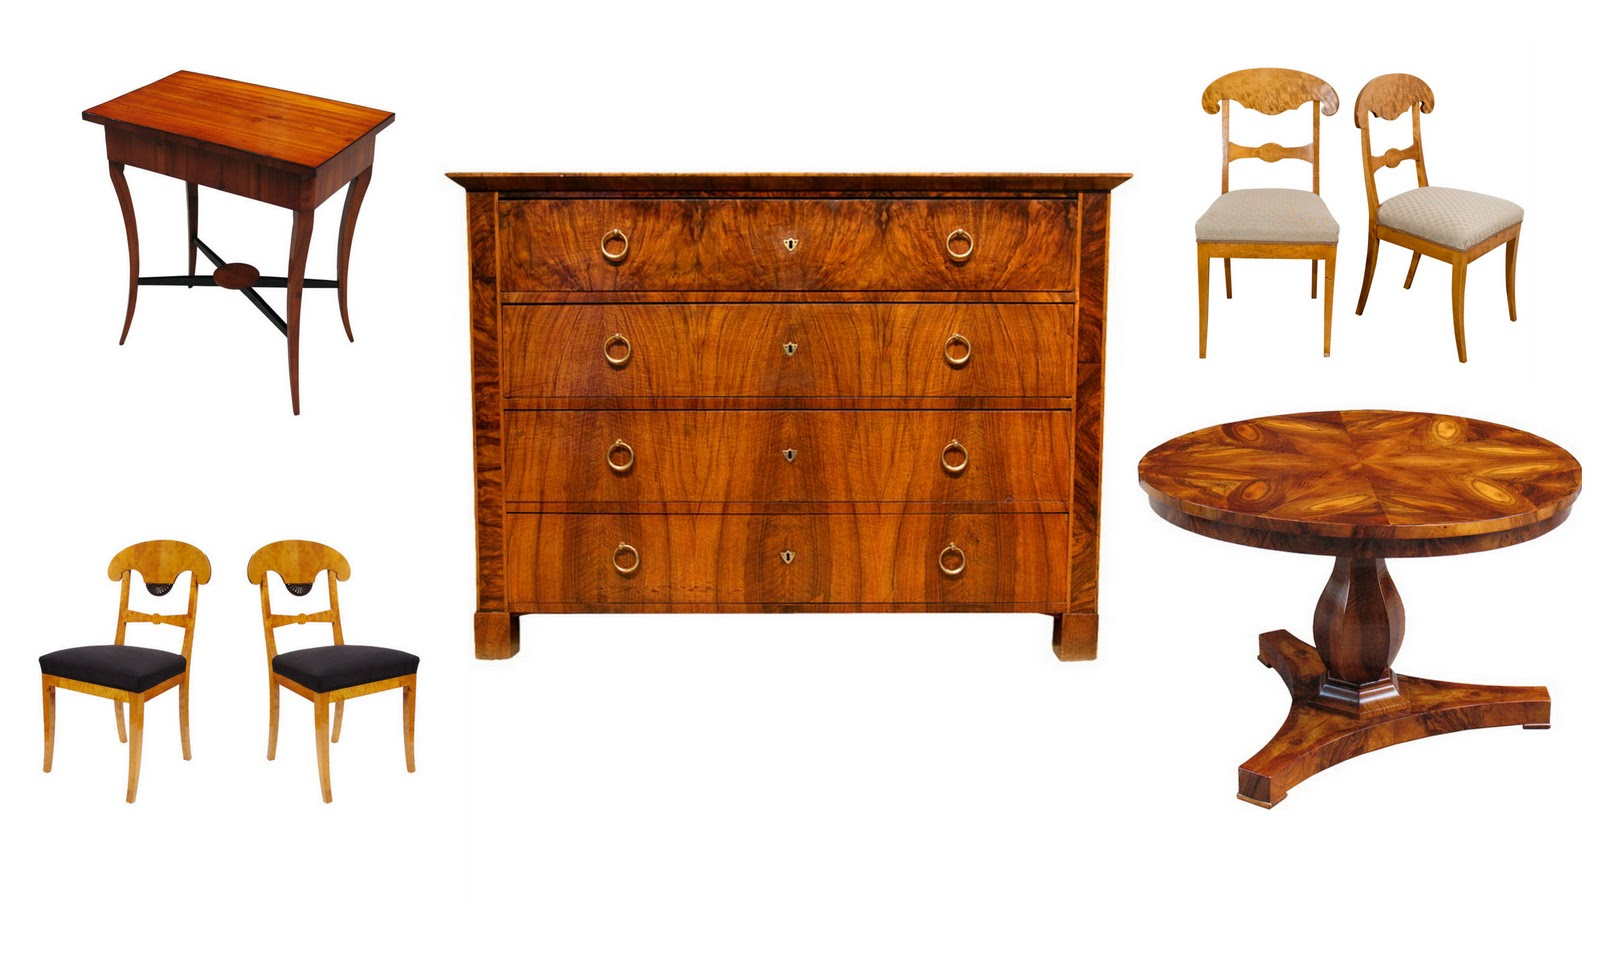 Polish Patina Modern Mix Ii Antique Furniture For Contemporary Collectors